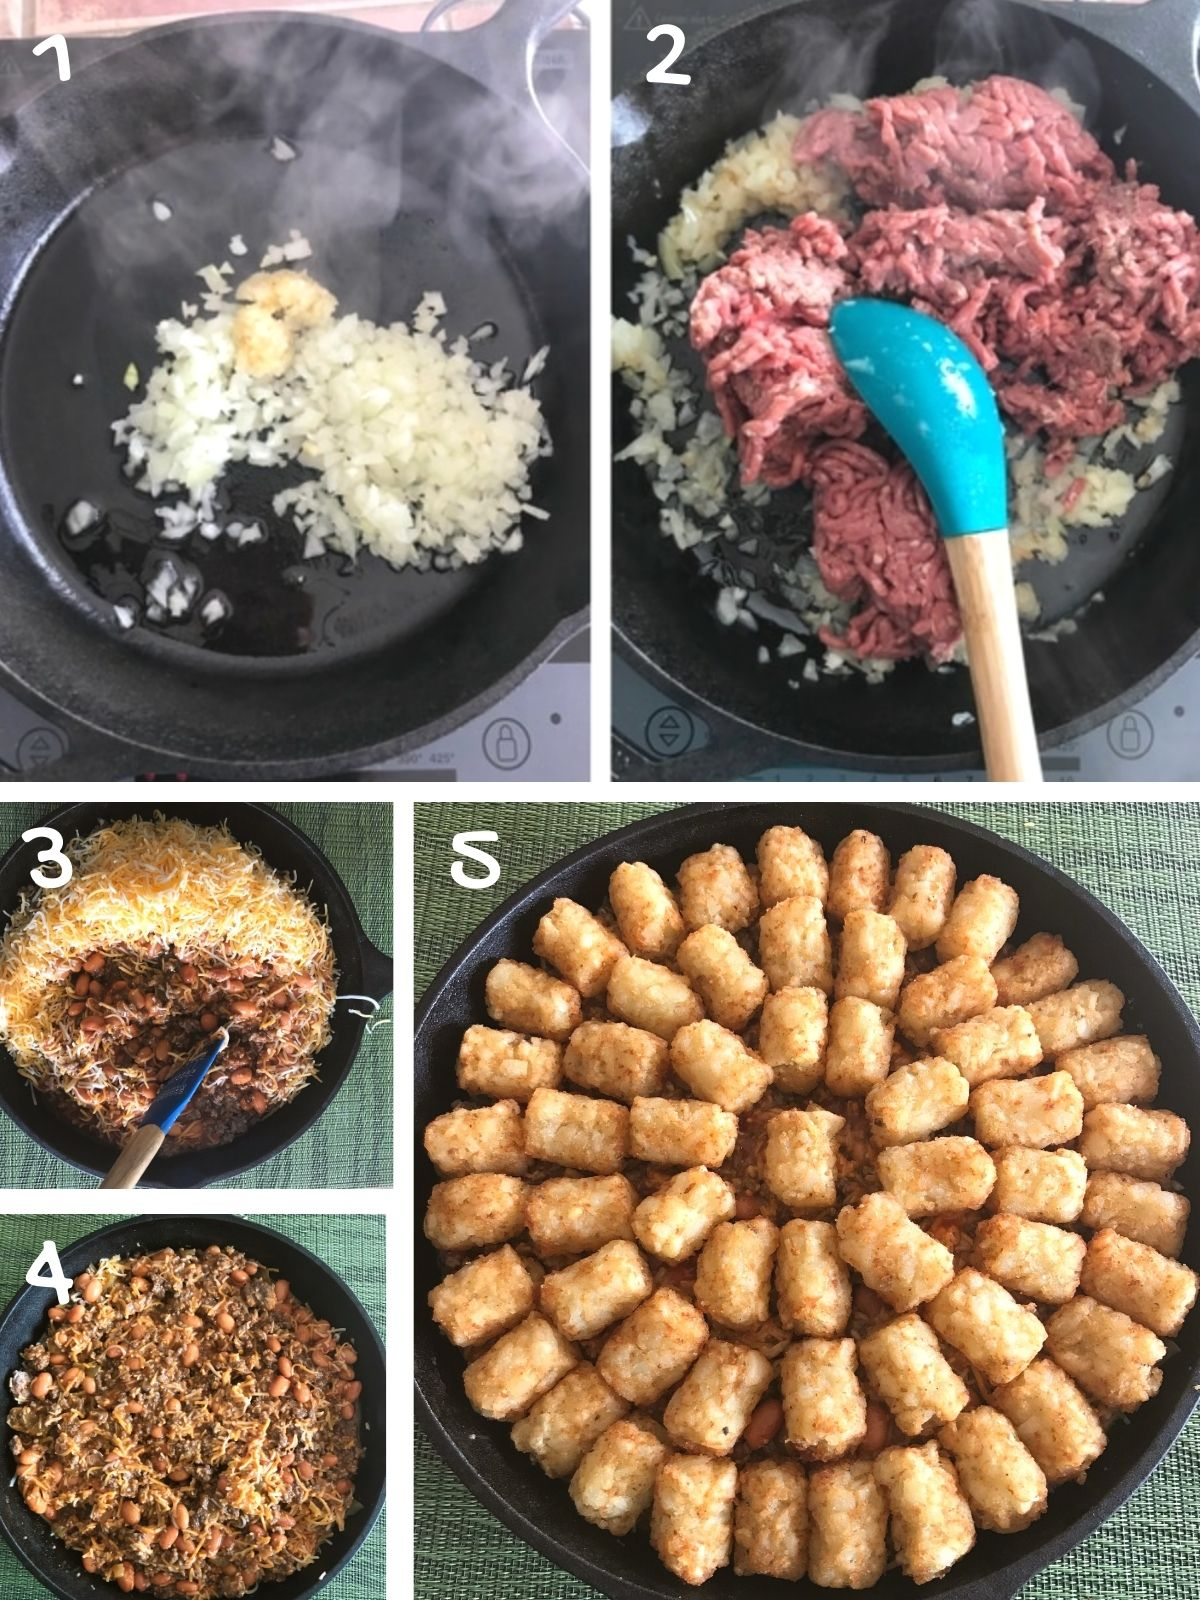 A collage of 5 images showing how to make tater tot casserole recipe.